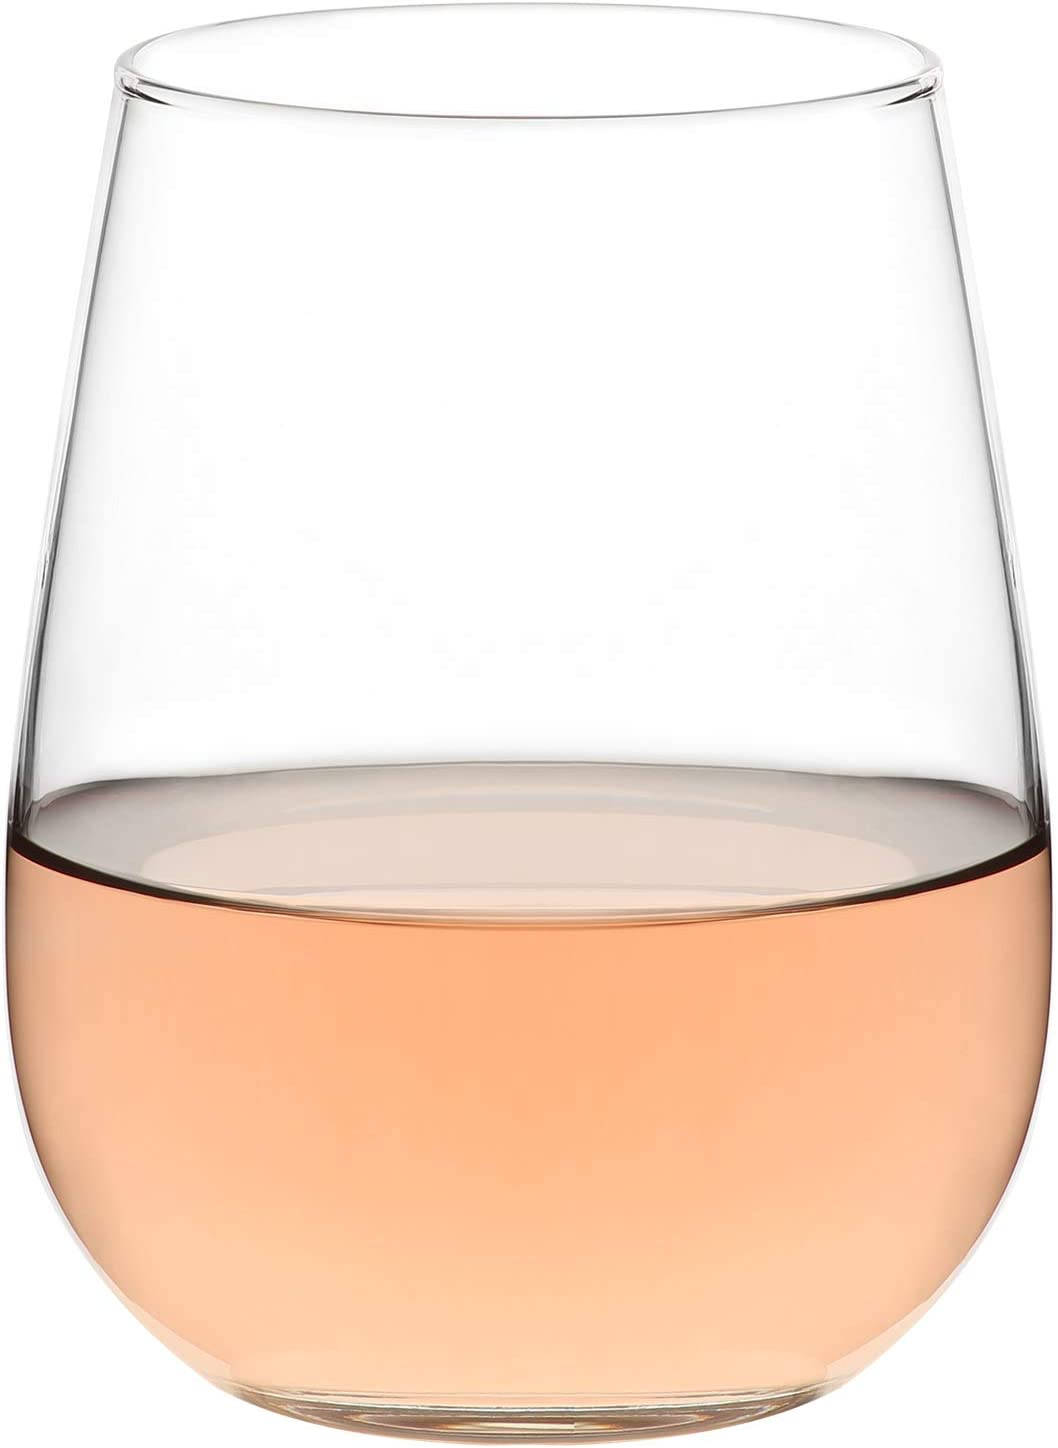 LAV Stemless Wine Glasses 6-Piece, Red or White | 16 oz All-Purpose Lead-Free Modern Clear Glass Tumbler Set for Wine & Water and Beverages | Easy to Hold, Ideal for Everyday Use or Entertaining